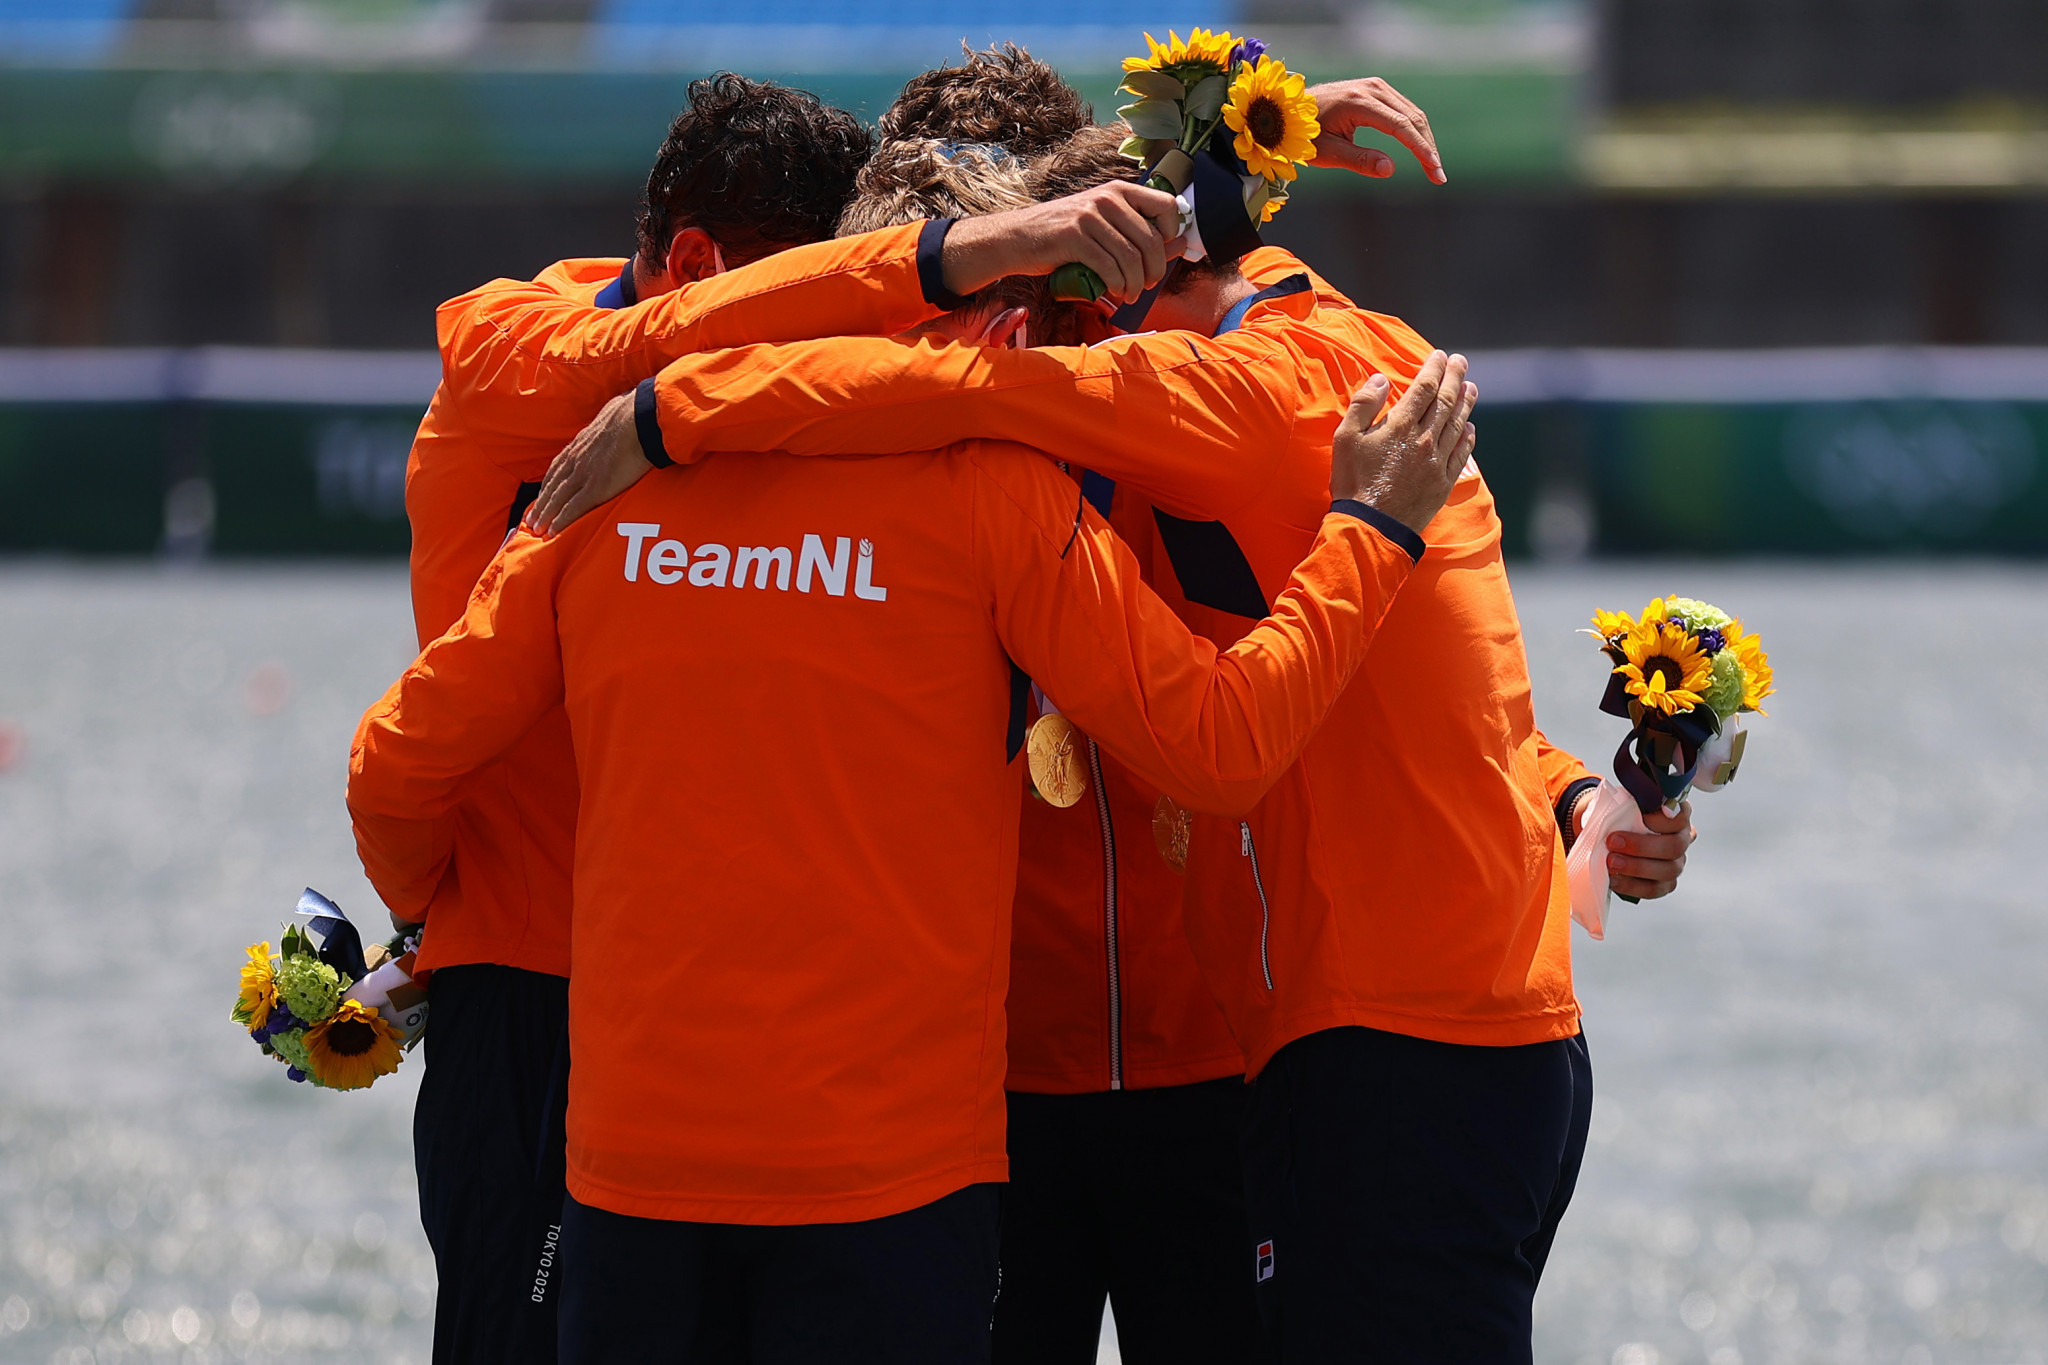 The Netherlands celebrate their victory in the quadruple sculls final after living up to their tag as favourites ©Getty Images